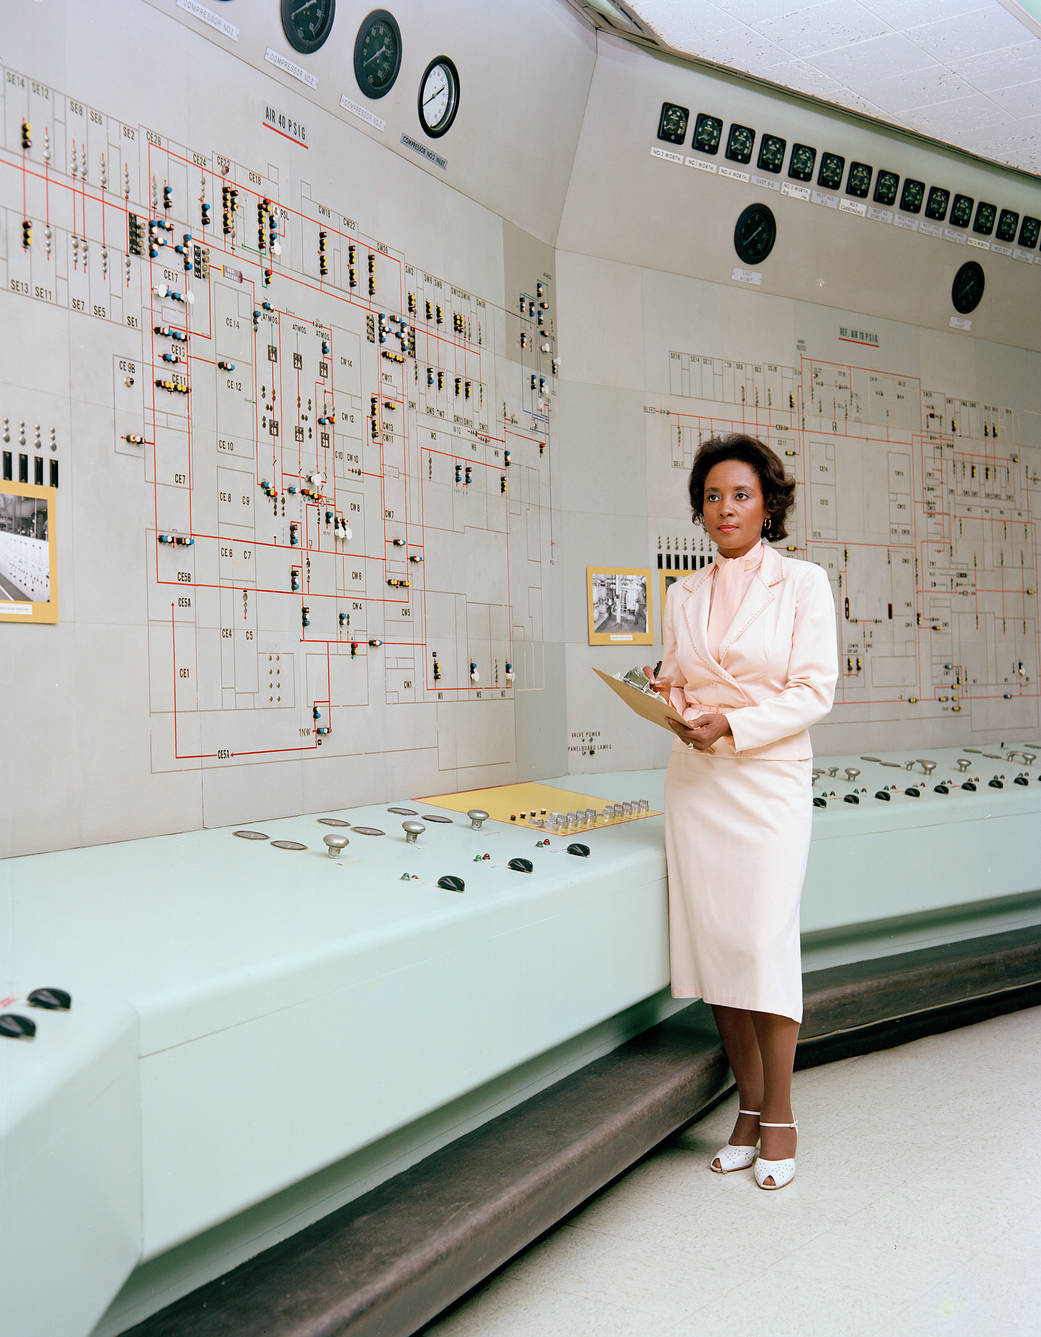 Annie Easley at NASA in 1981. Image: nasa.gov